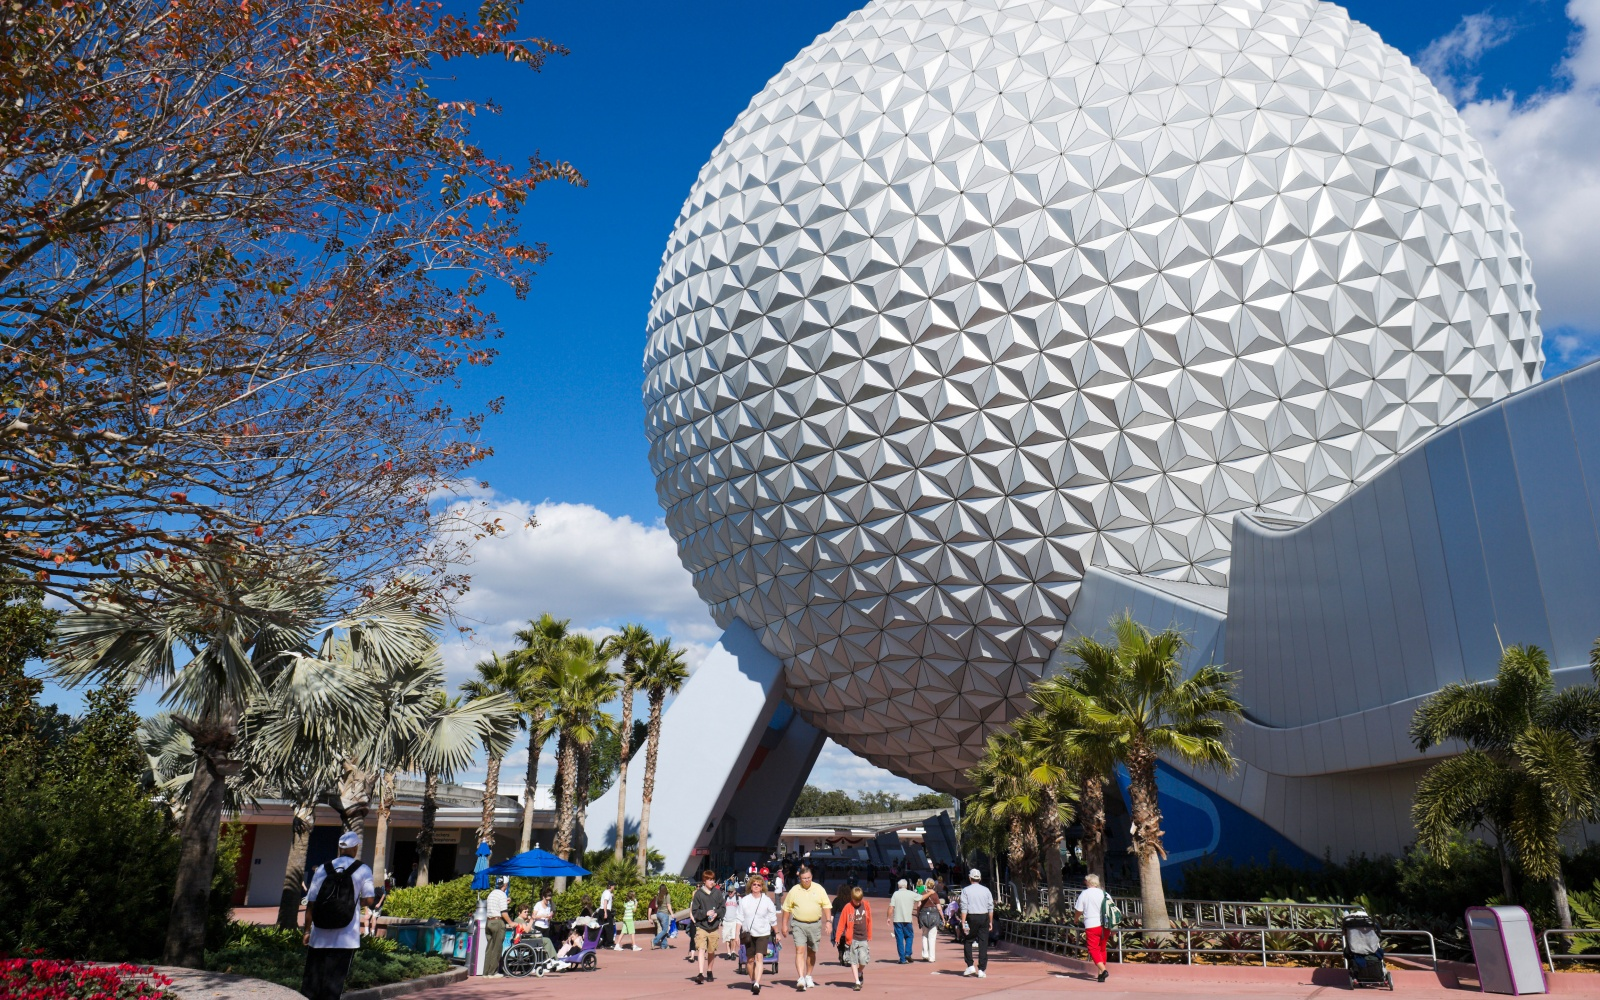 Epcot, Walt Disney World Resort, Lake Buena Vista, Florida